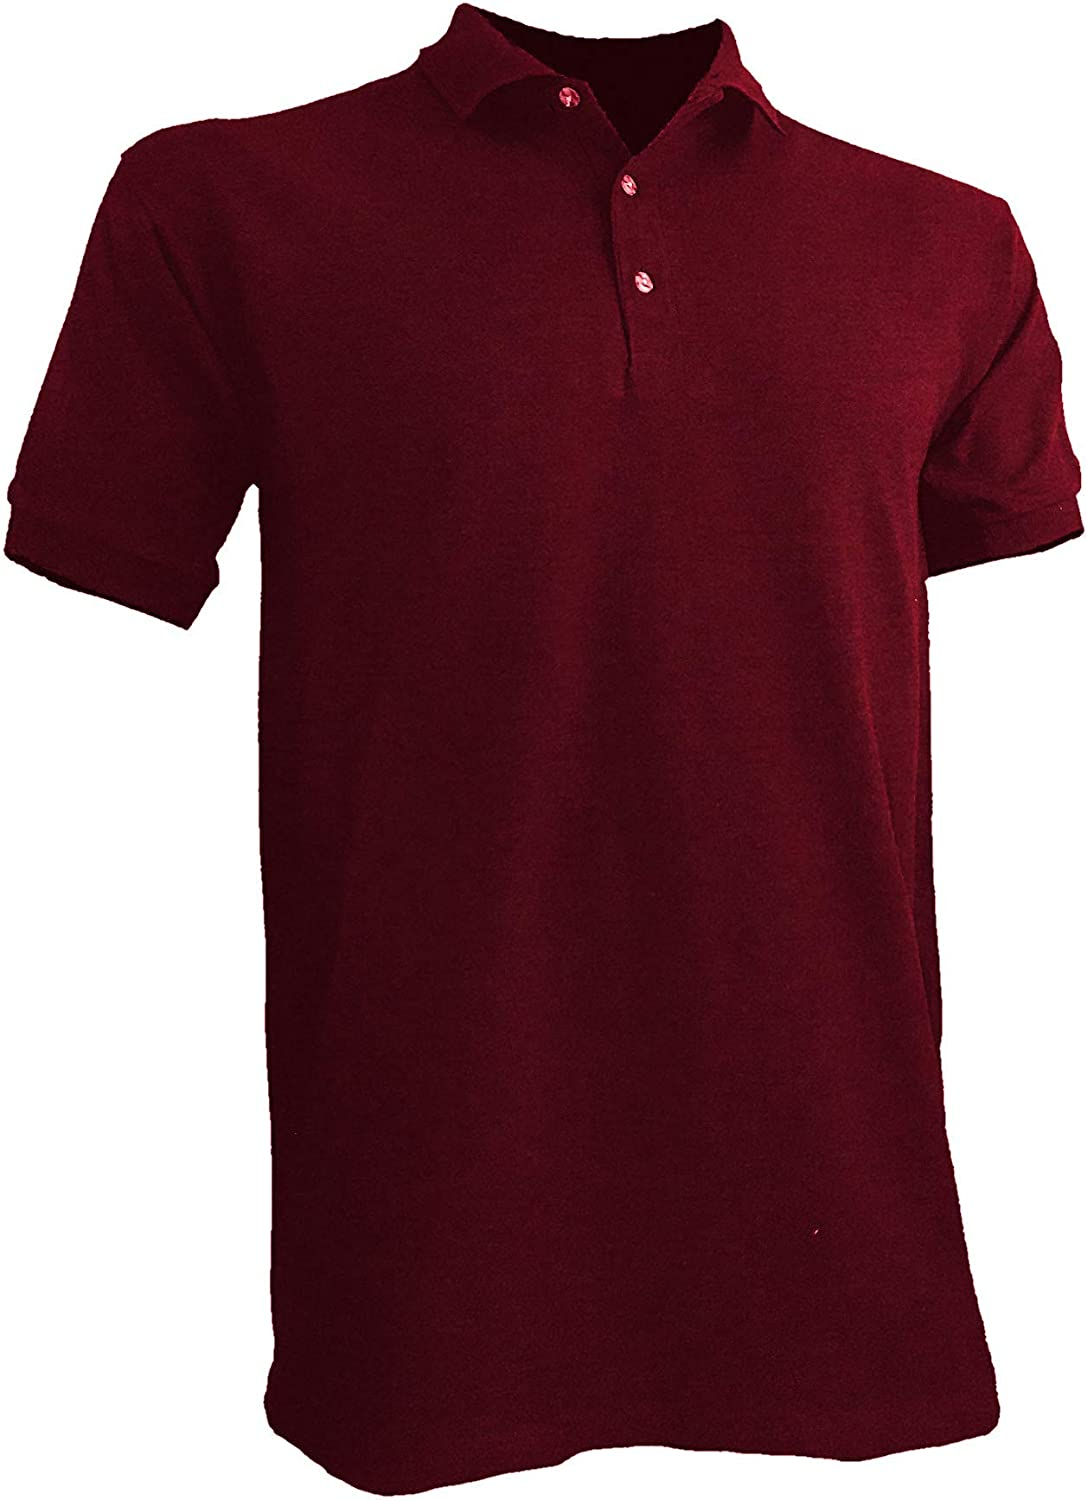 Styllion Big and Tall - Mens Jersey Polo Shirts - Heavy Weight - PJSS